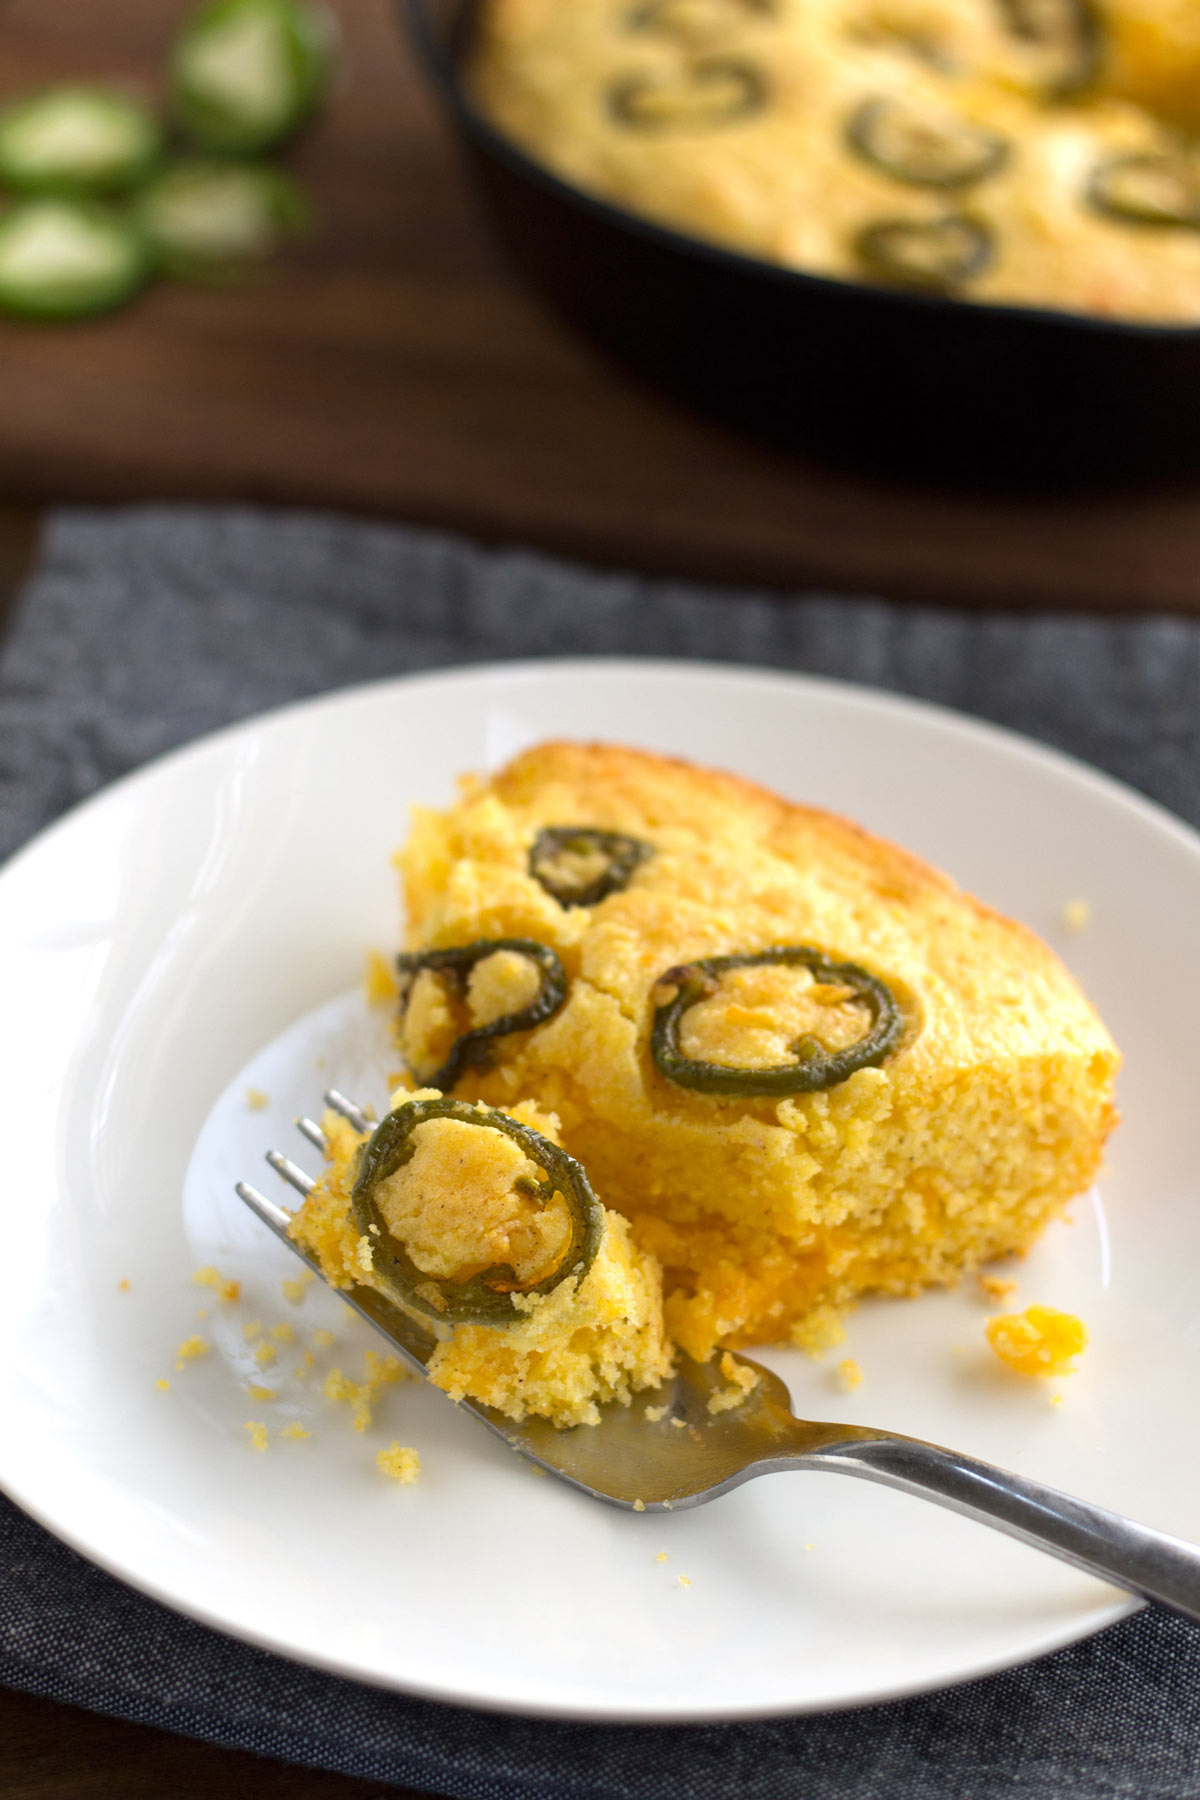 Piece of Mexican-style jalapeno cornbread on a plate with a fork.